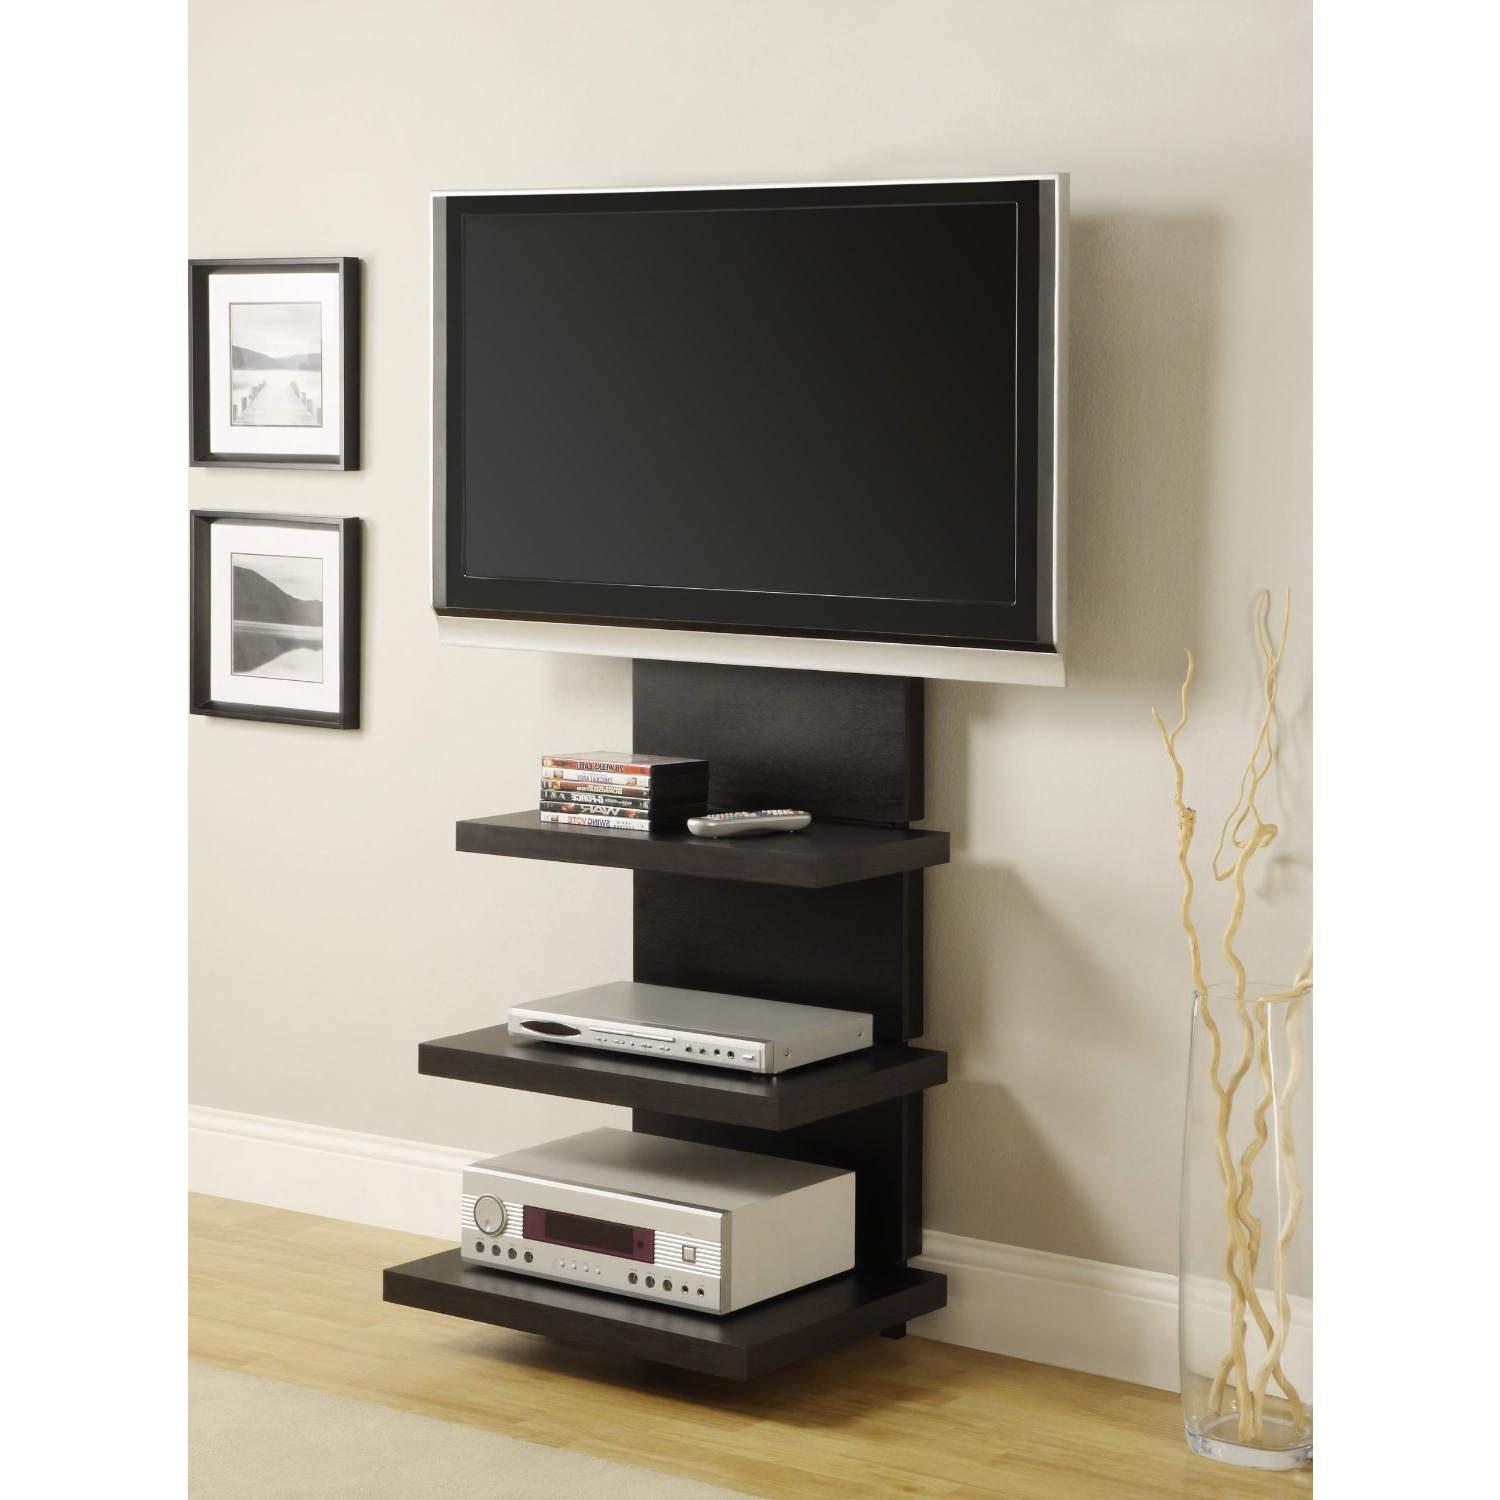 Preferred Bedroom Television Cabinets And Stands Small Corner Tv Unit Tall Tv Inside Narrow Tv Stands For Flat Screens (View 16 of 20)